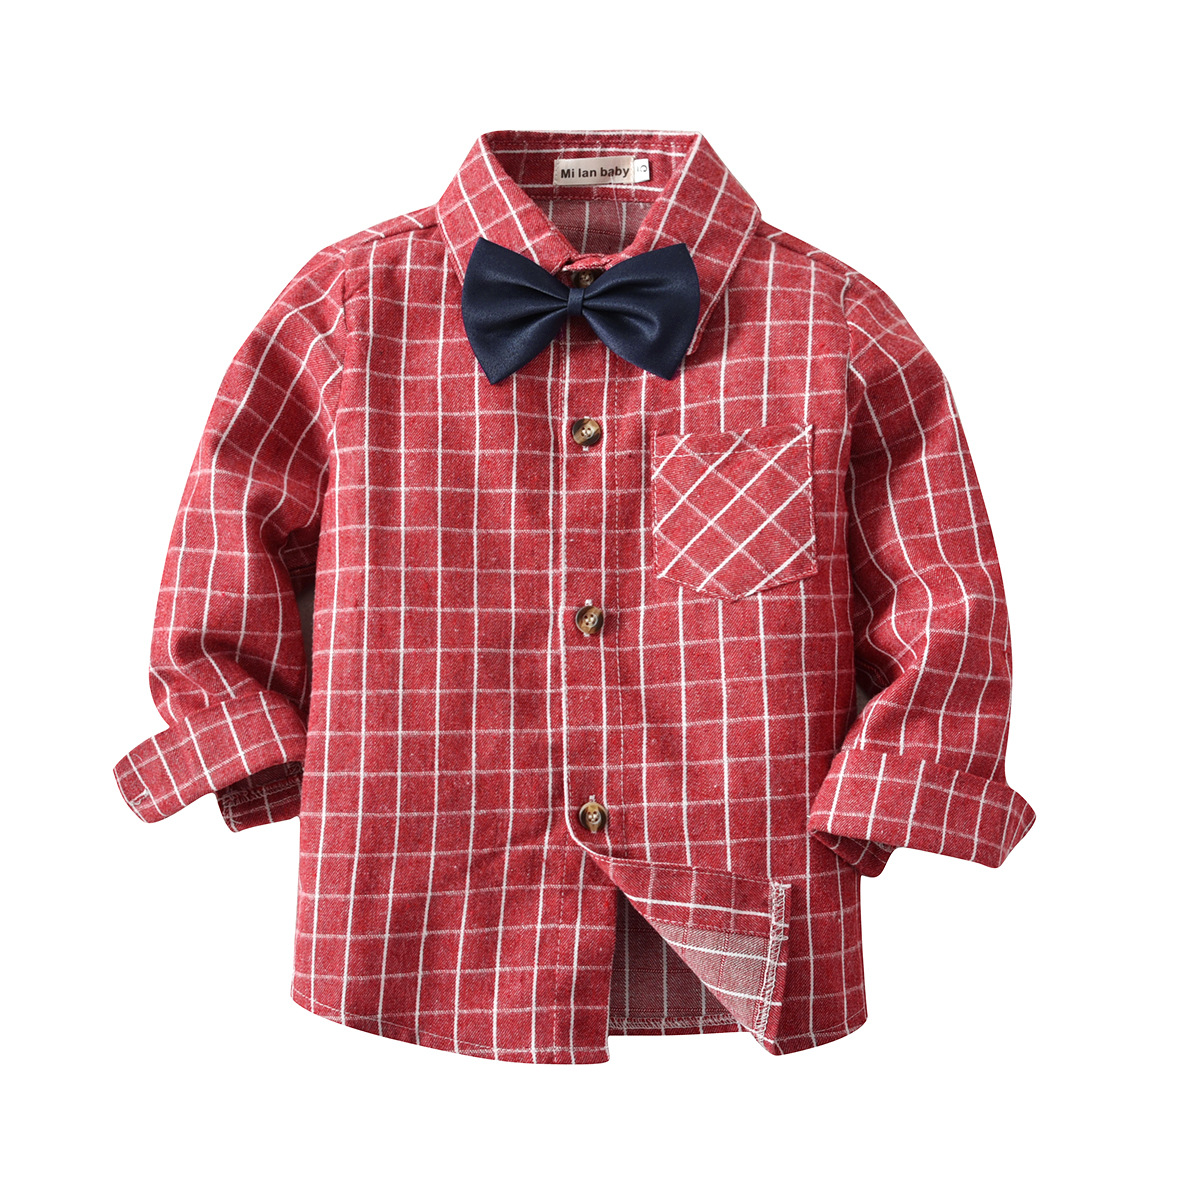 Logical Oklady Children Red Plaid Shirt Baby Boys Girls Cotton Long Sleeve Plaid Shirts Kids Plaid Blouse Autumn Tops Toddler Casual Soft And Light Boys' Clothing Shirts